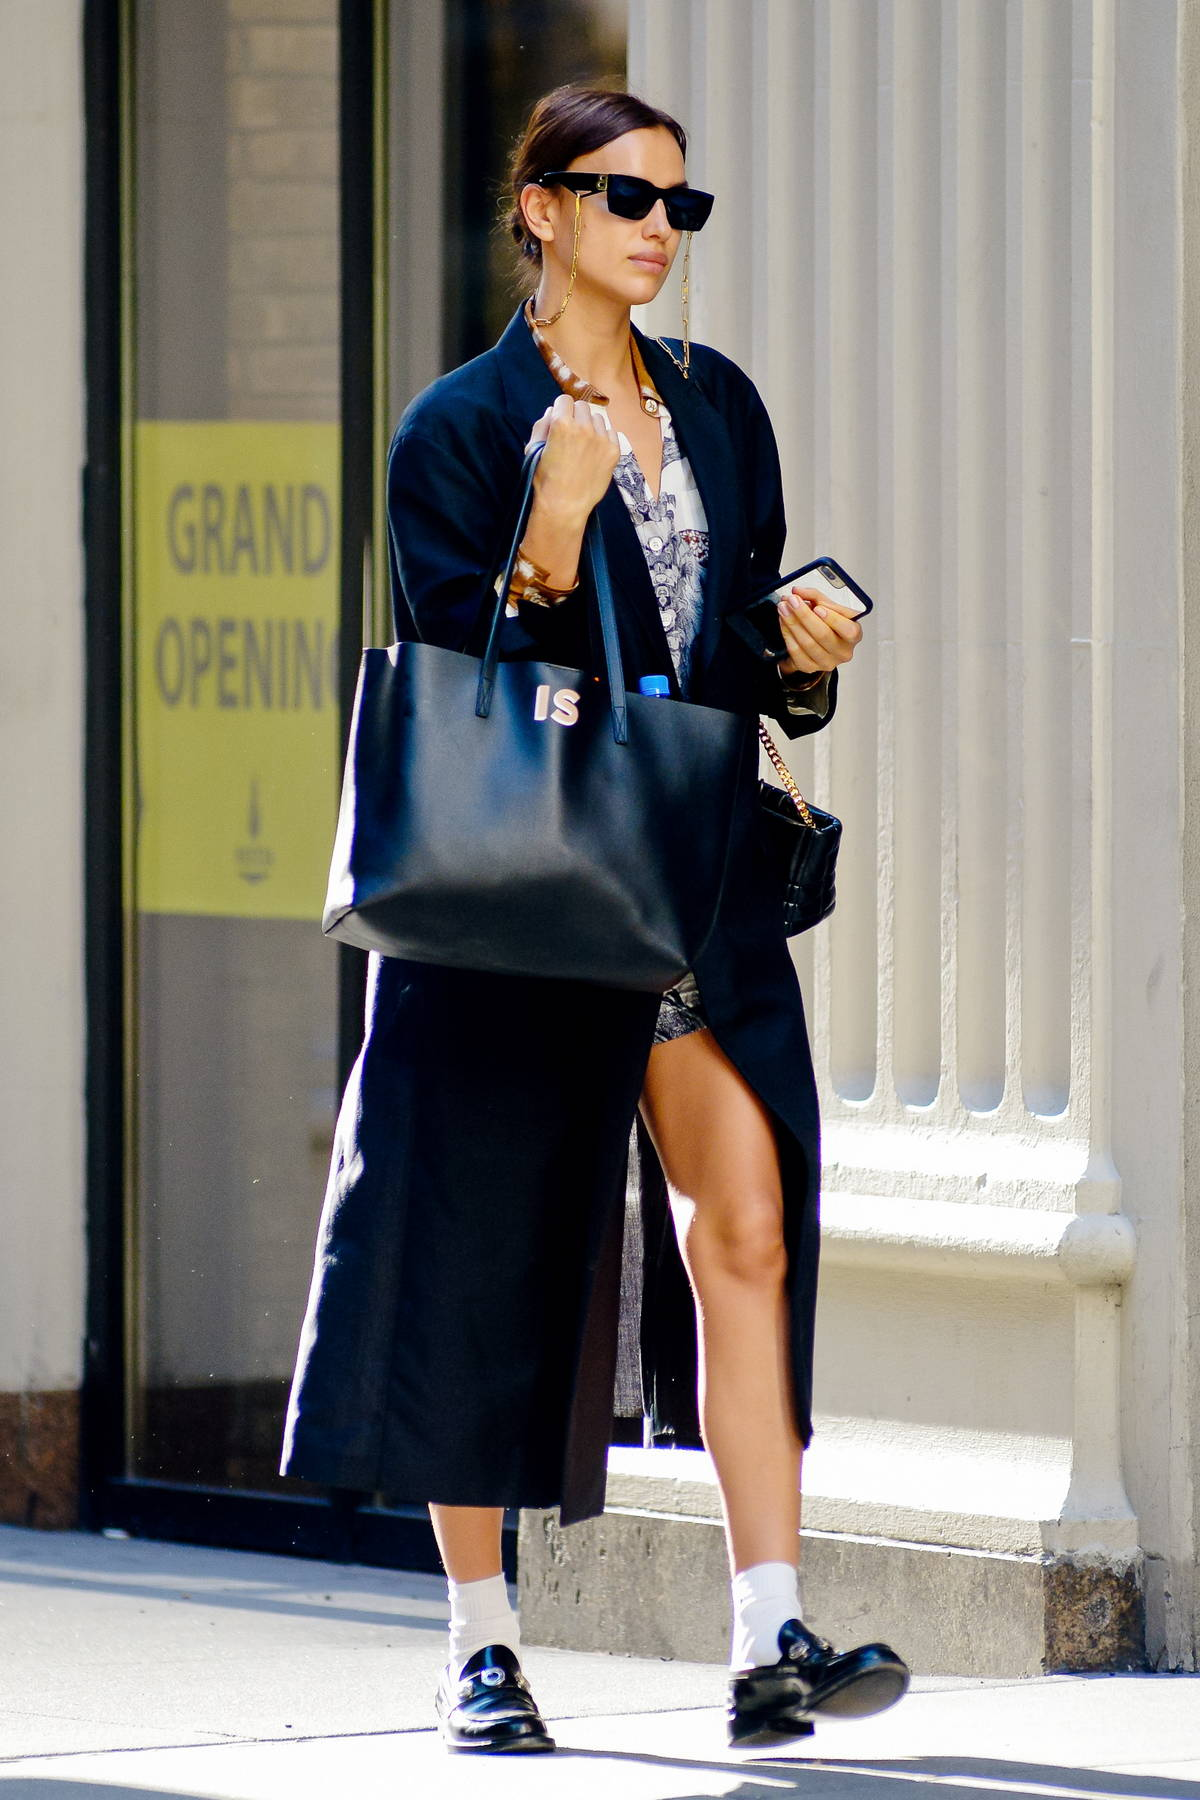 Irina Shayk looks super chic in a black trench coat over a mini dress while out in New York City